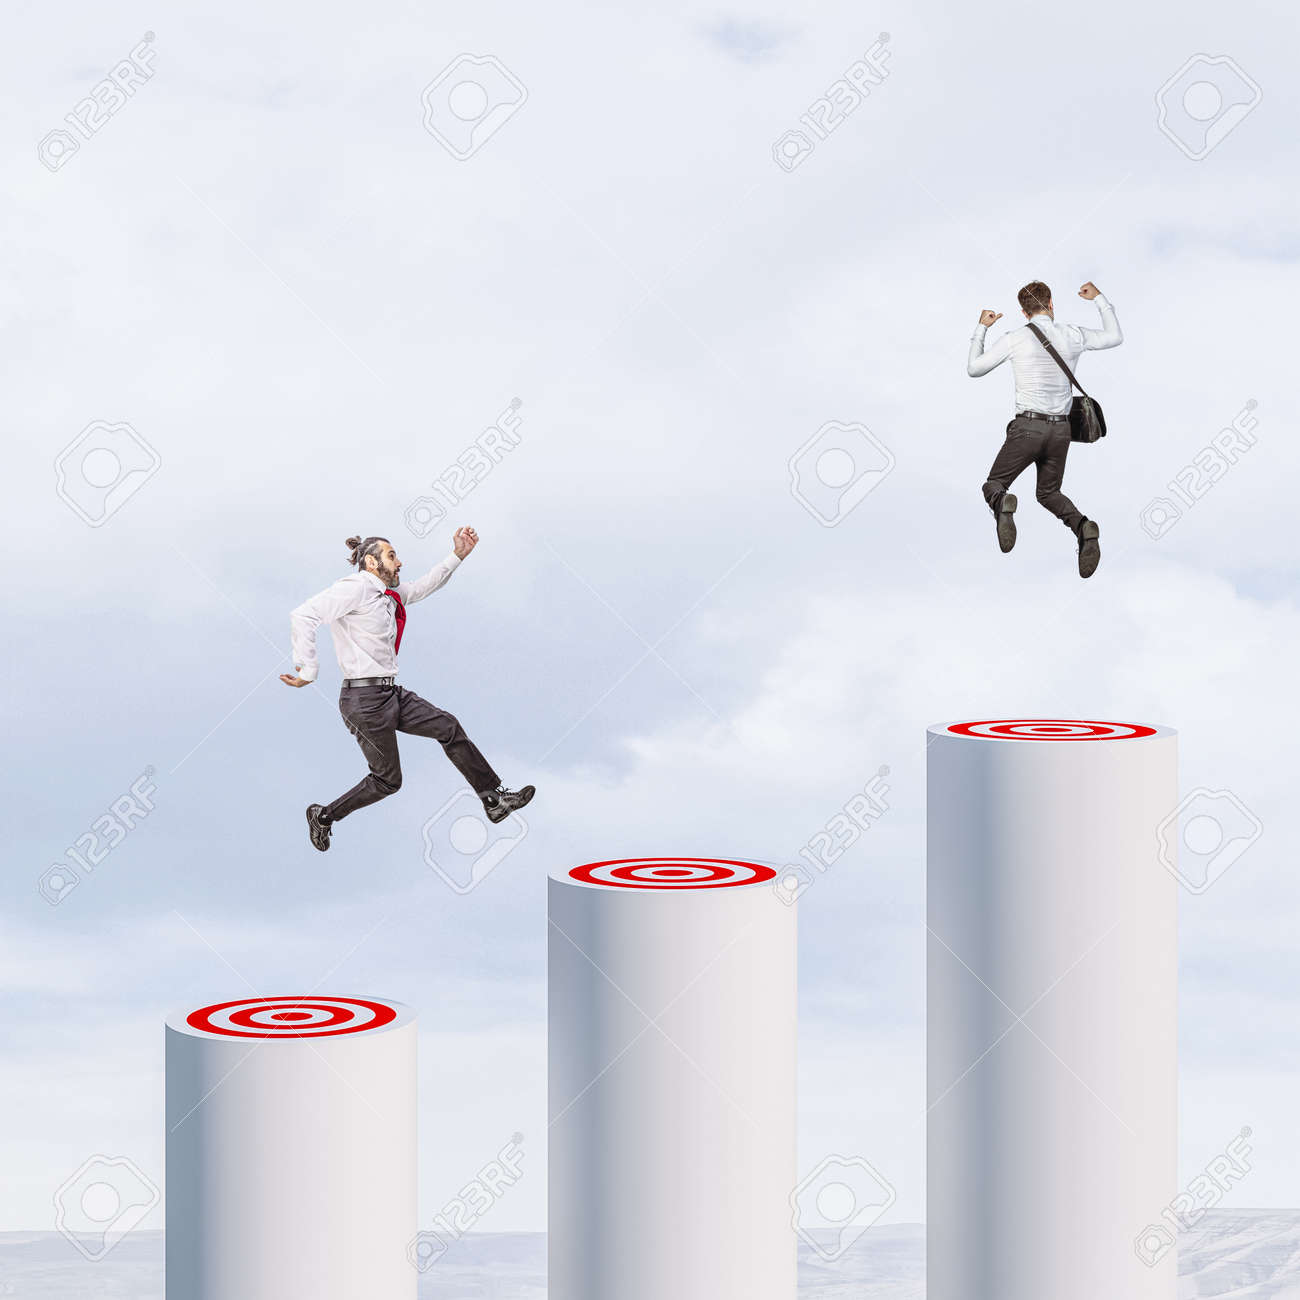 businesspeople jumping from one goal to another. business success concept. - 171105591